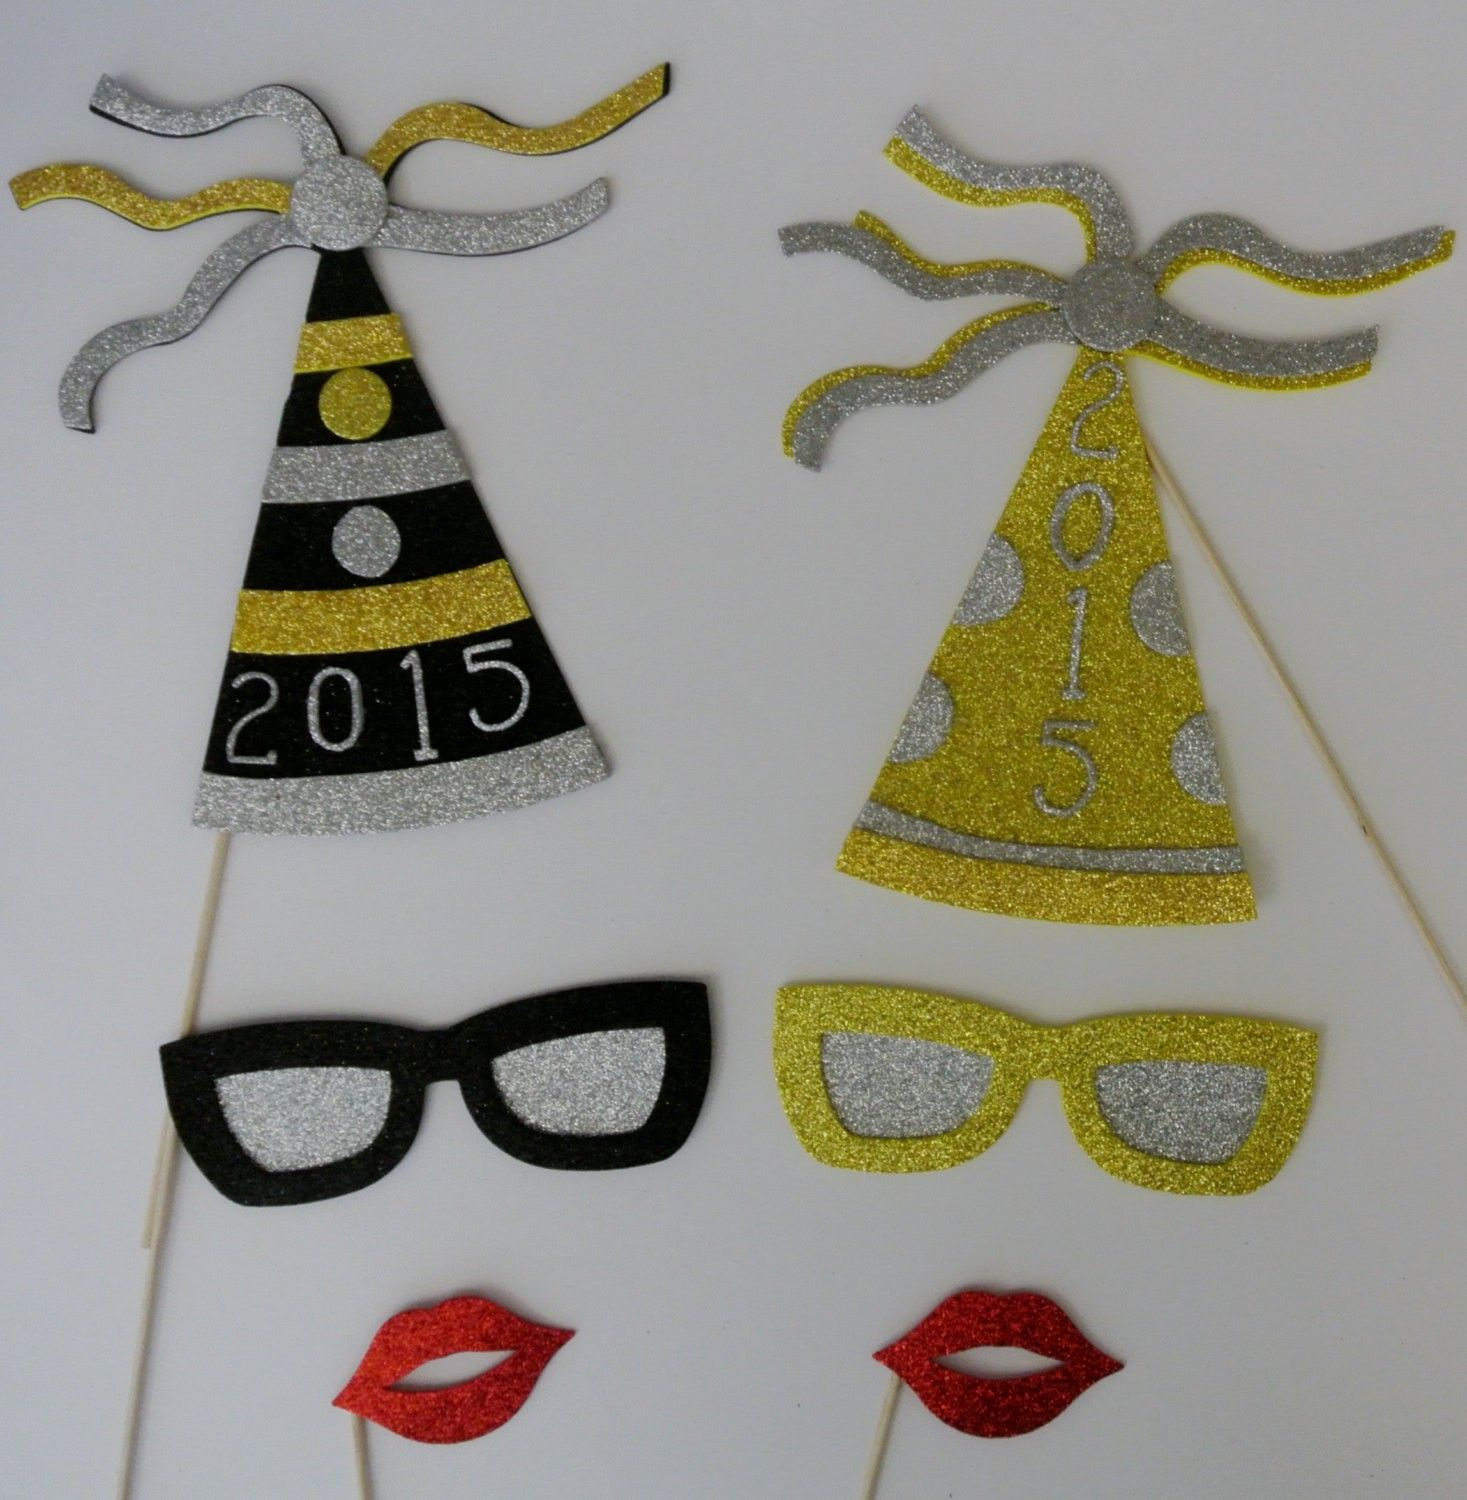 New Years Photo Booth Props 2015 Glasses And  2015